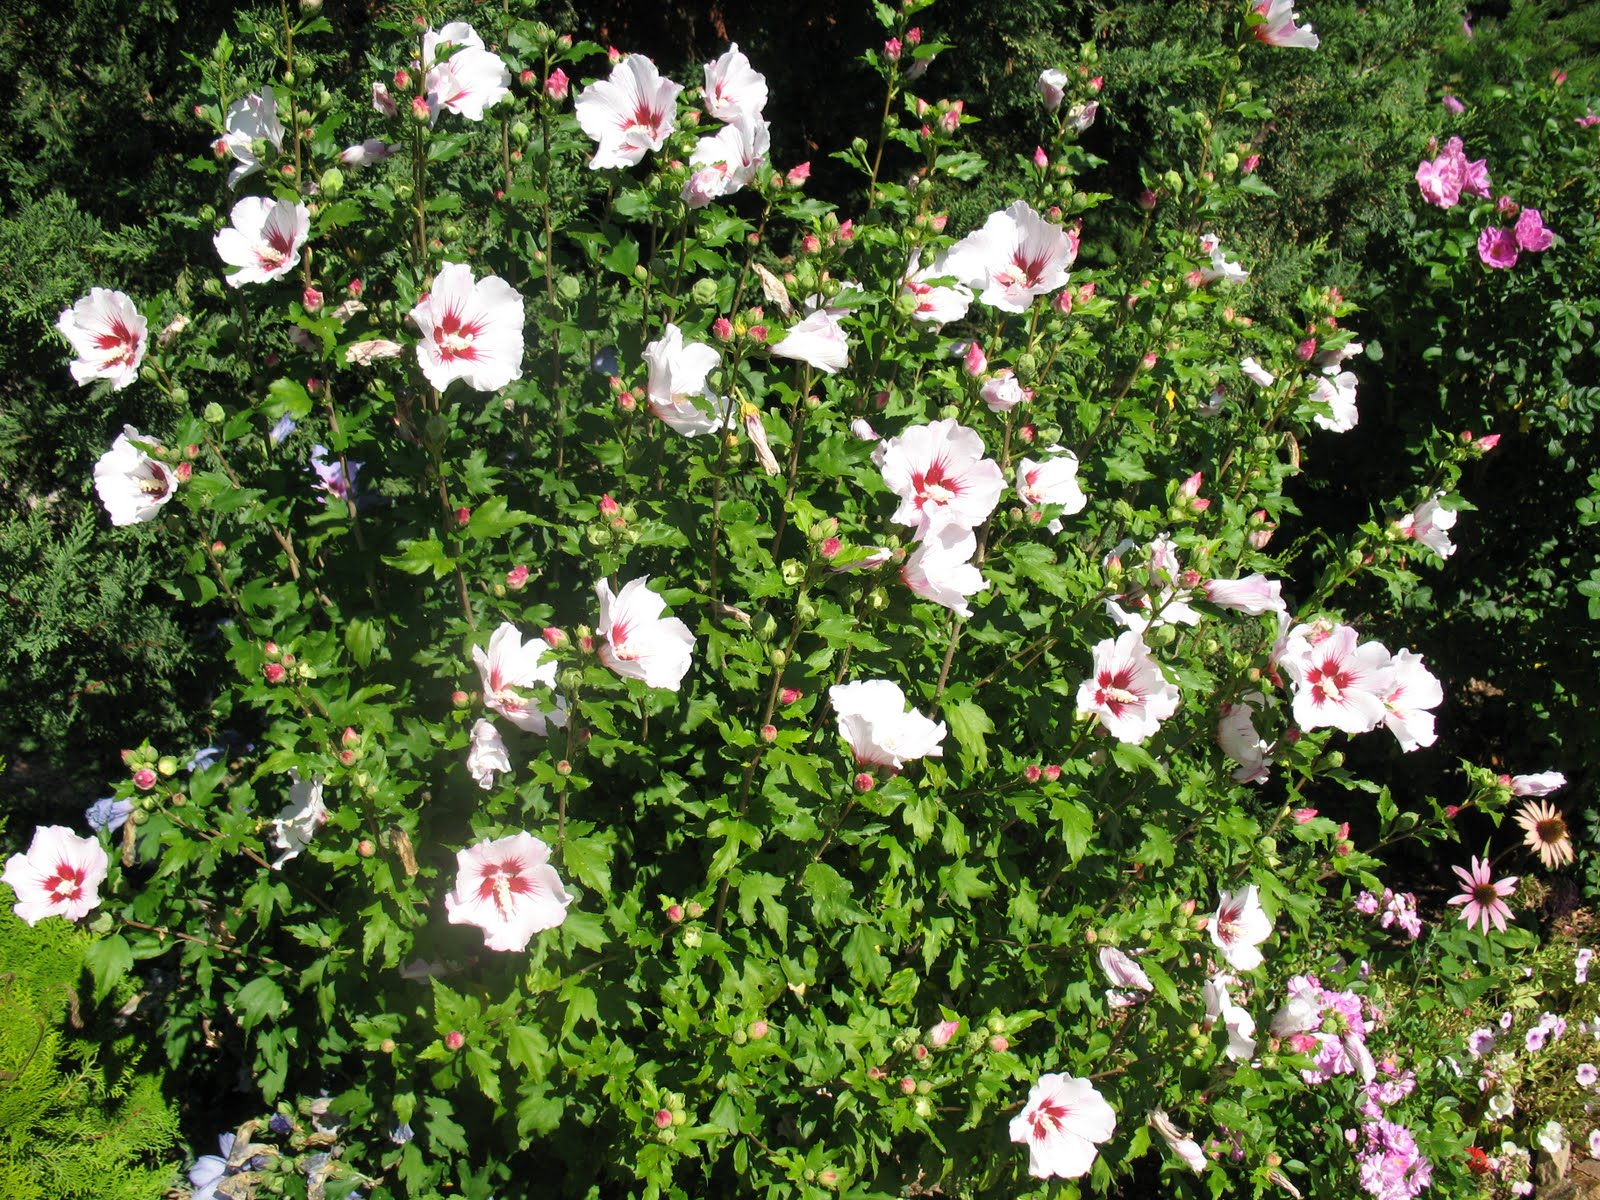 8 graines d 39 hibiscus syriacus red heart h170 althea rose of sharon seeds ebay. Black Bedroom Furniture Sets. Home Design Ideas